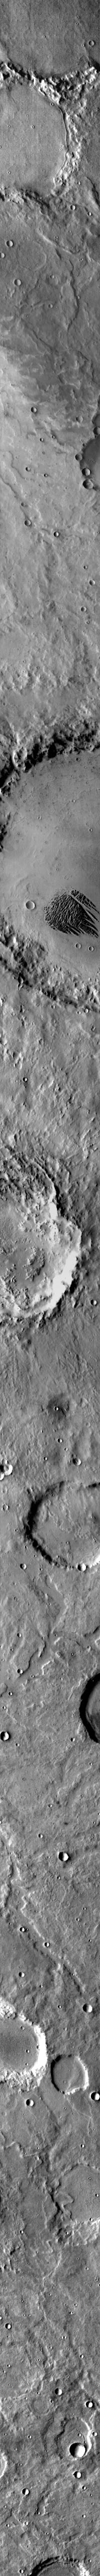 This infrared image, taken by NASA's 2001 Mars Odyssey spacecraft, shows the feature called 'White Rock.' The feature is dark, indicating that it is cooler than the surroundings.